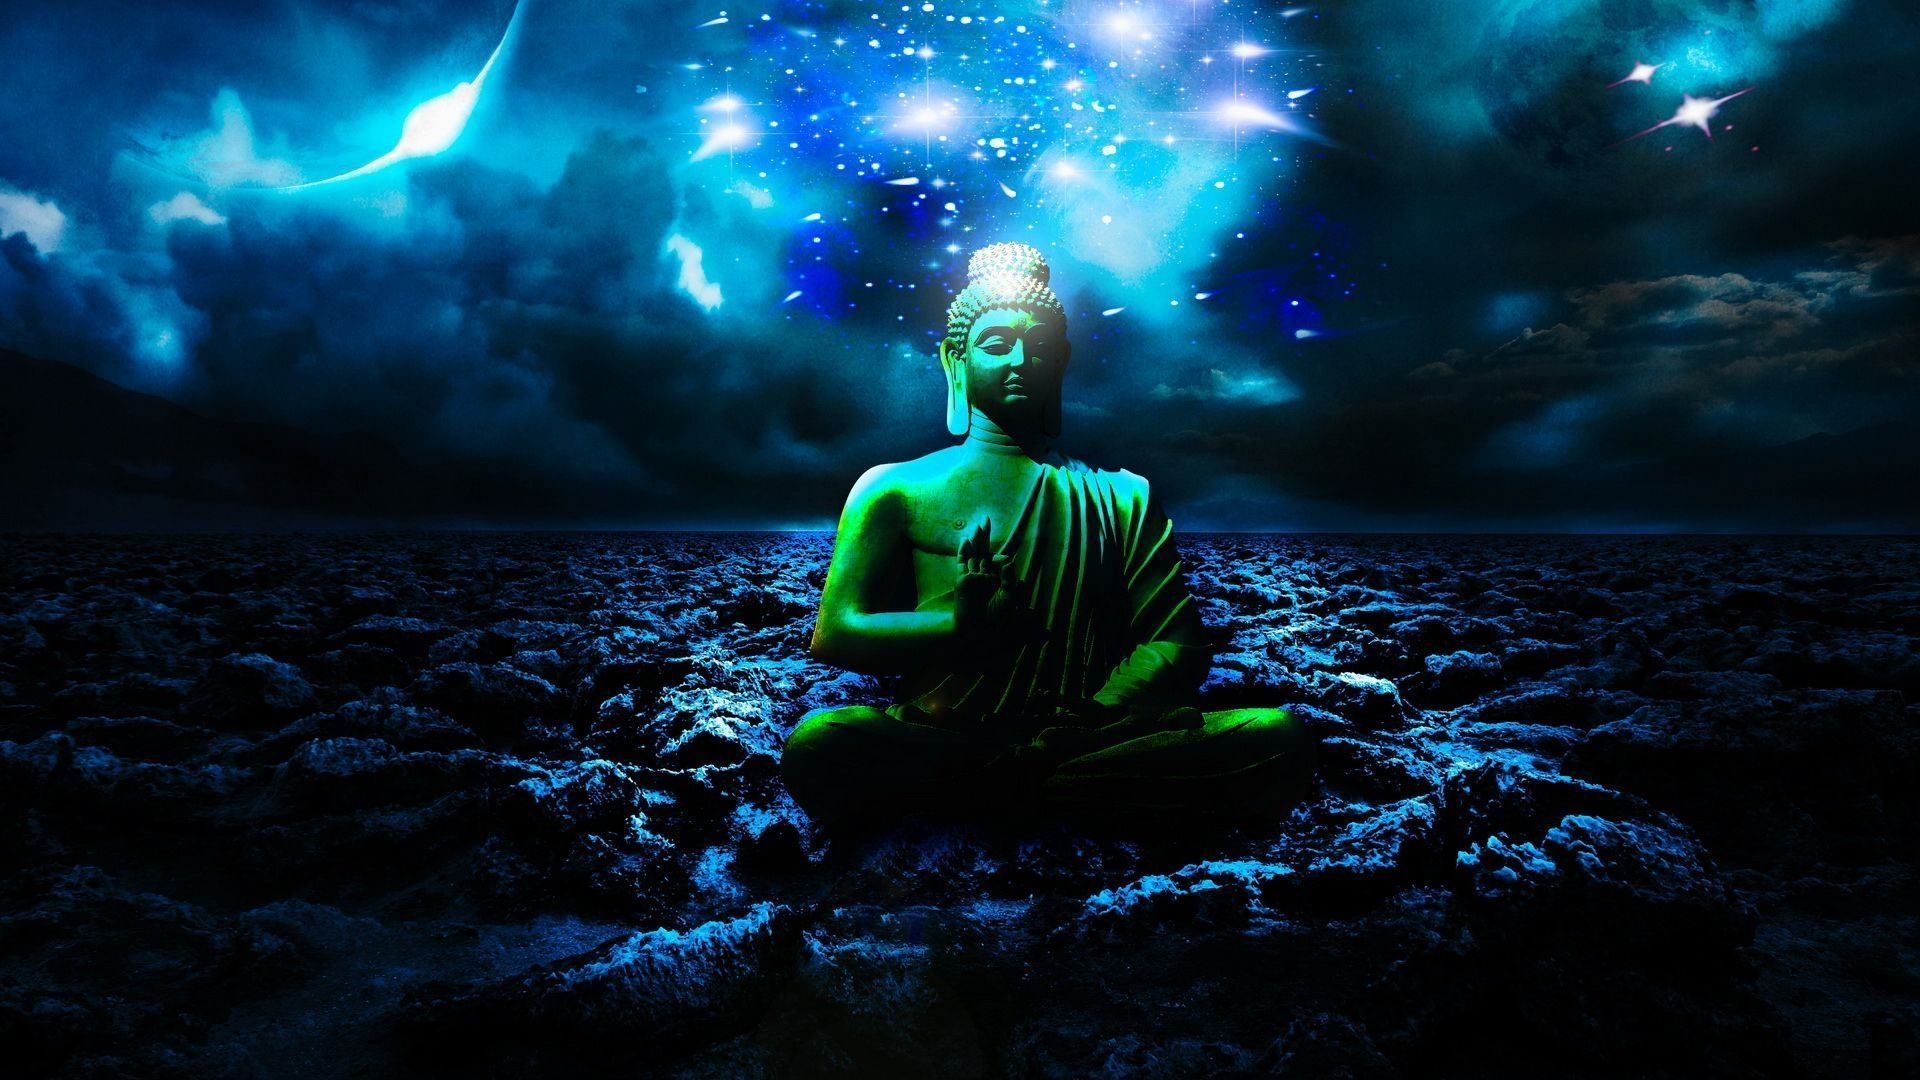 Buddhist Meditation Wallpapers Top Free Buddhist Meditation Backgrounds Wallpaperaccess